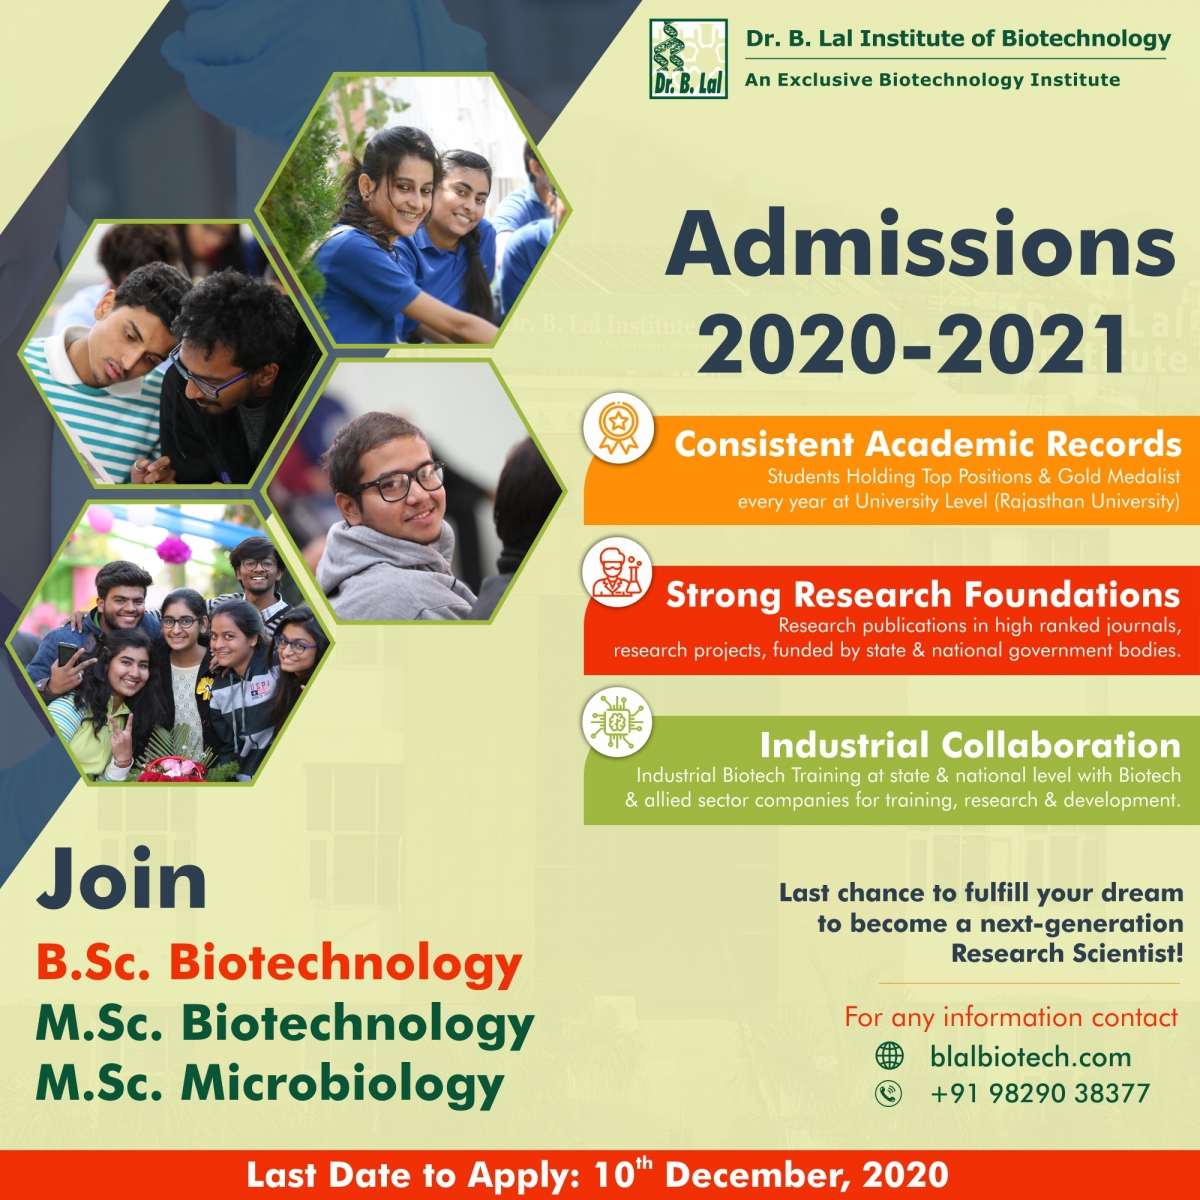 Admissions 2020-21 Closing (Last Date: 10th Dec) | blalbiotech.com